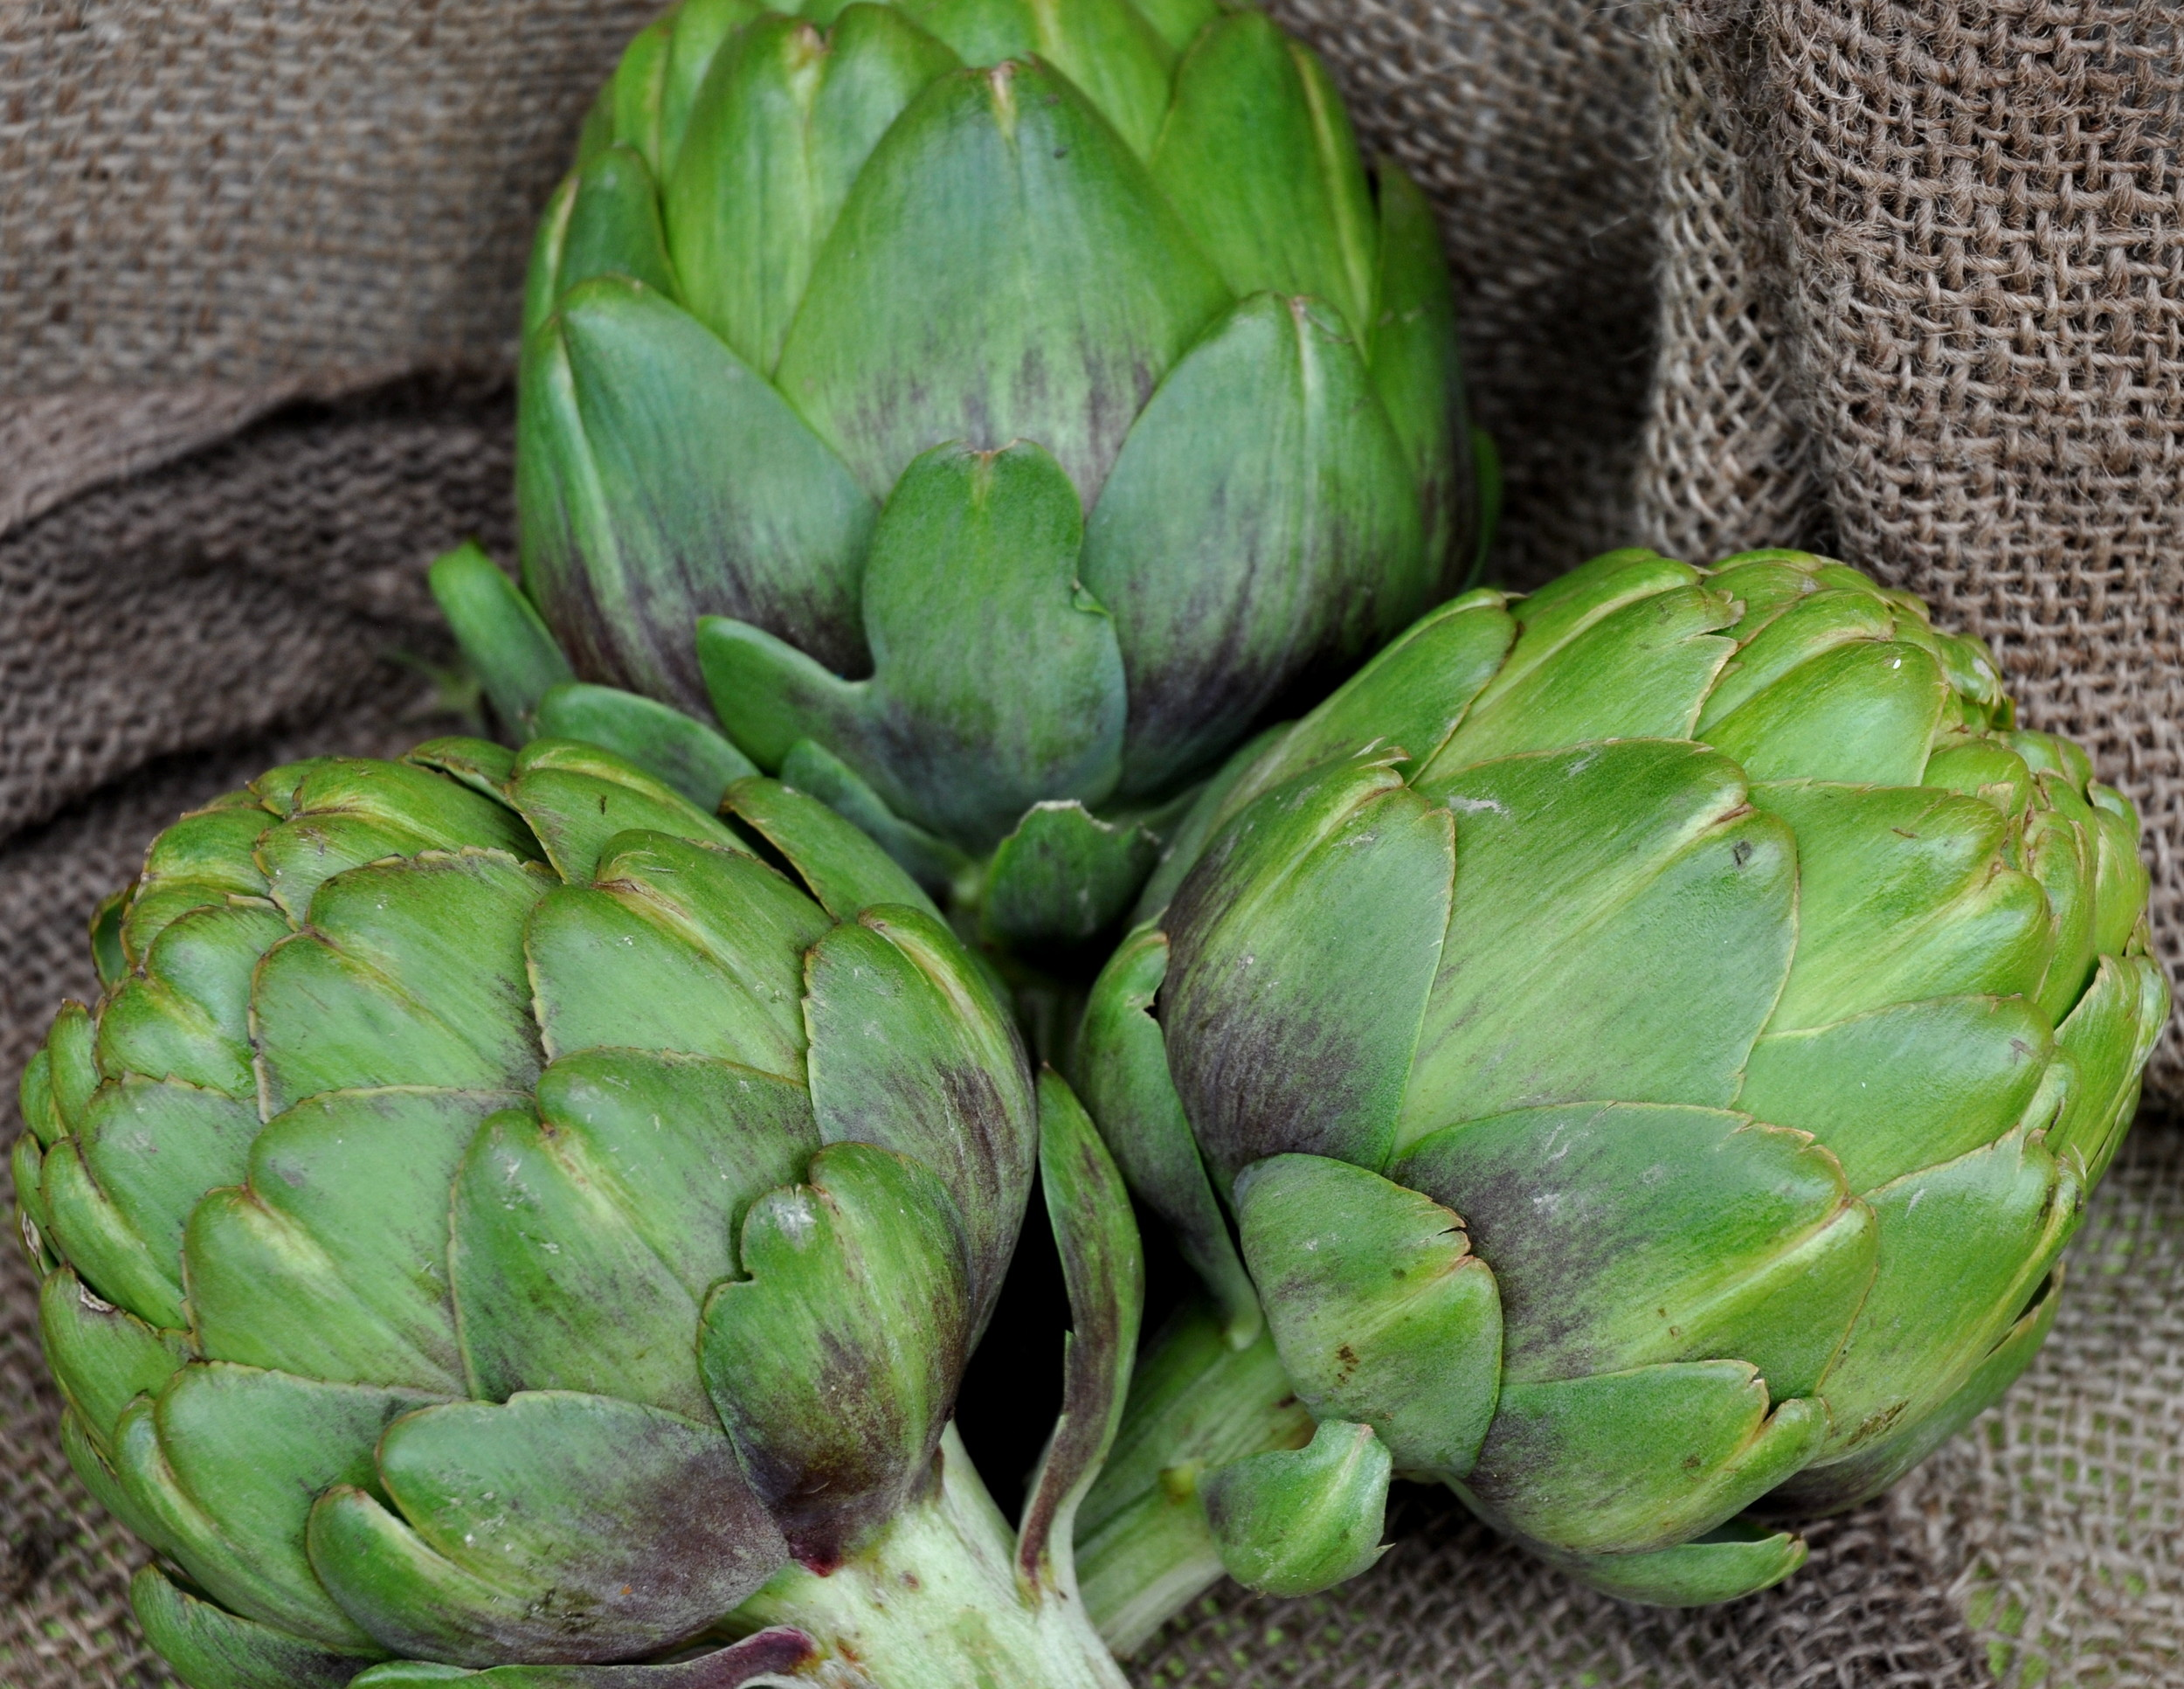 Artichokes from Growing Things Farm at Ballard Farmers Market. Copyright Zachary D. Lyons.